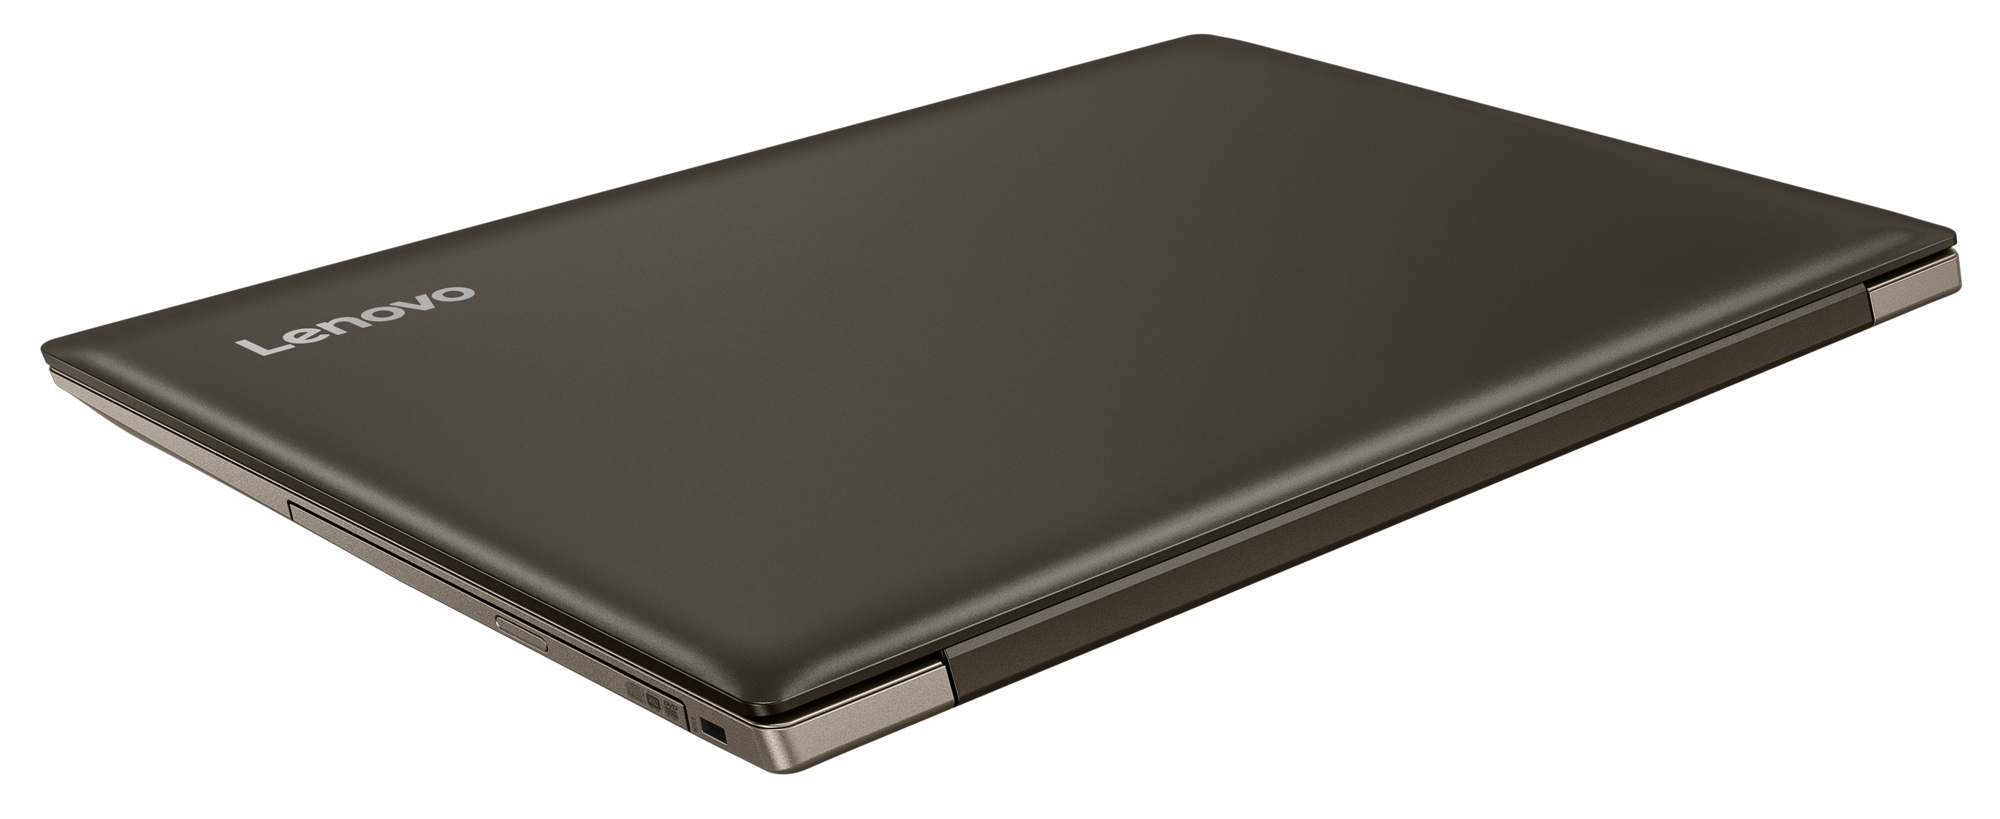 Фото  Ноутбук Lenovo ideapad 330-15 Chocolate (81DC0099RA)